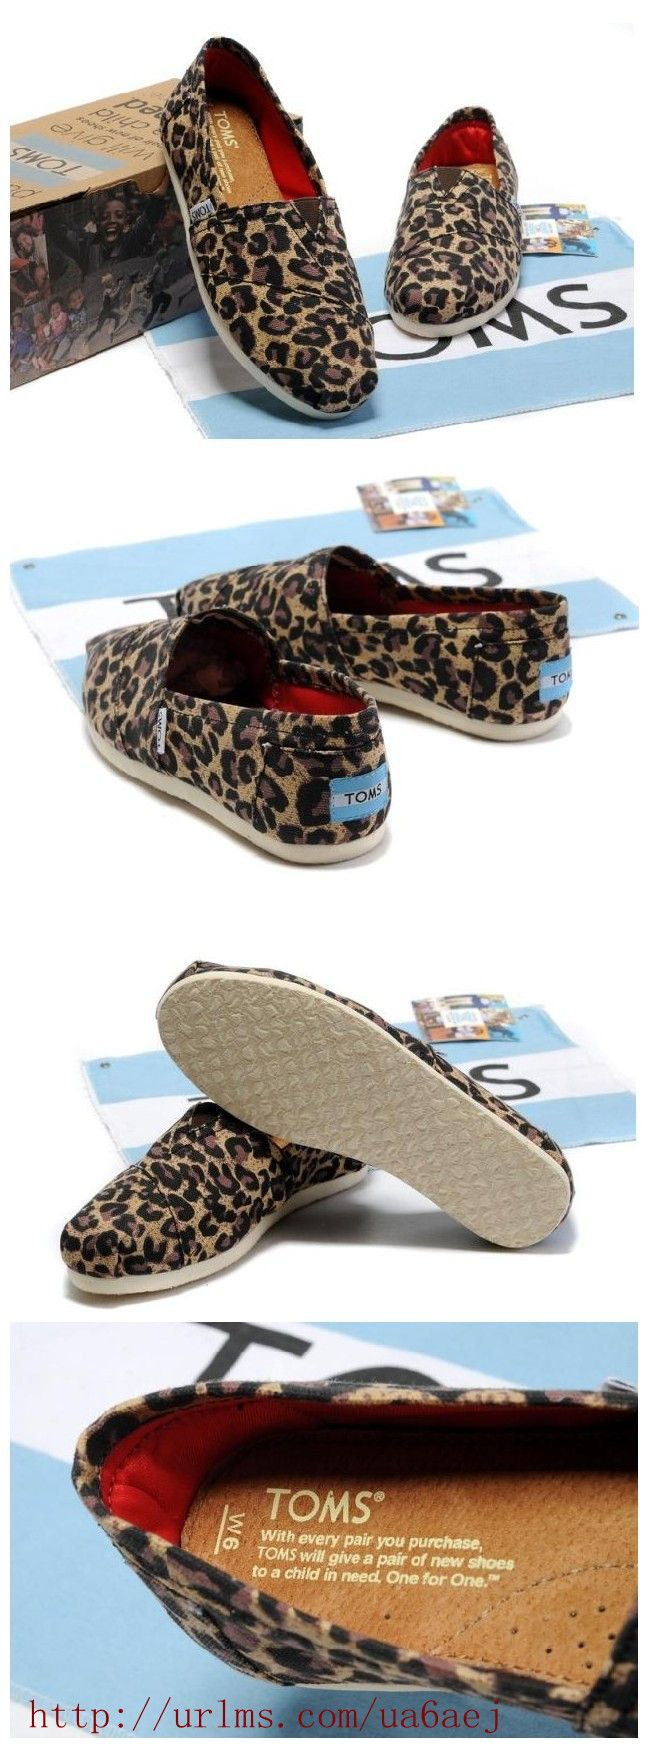 #TOMS Leopard Fleece Slip-On Shoes For Women - Gifts for #Xmas - $25